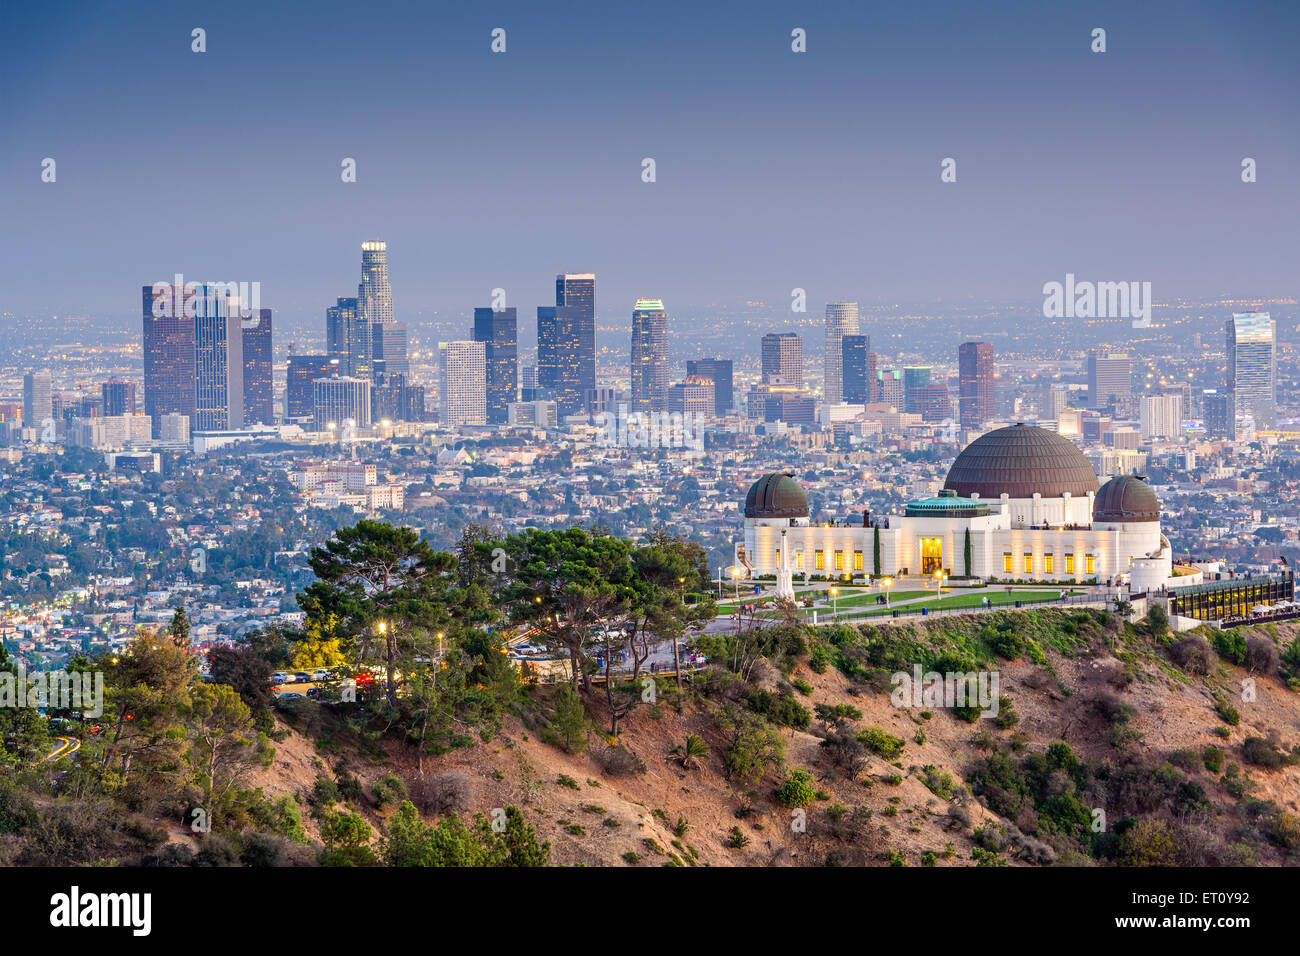 Los Angeles, California, USA downtown skyline from Griffith Park. - Stock Image